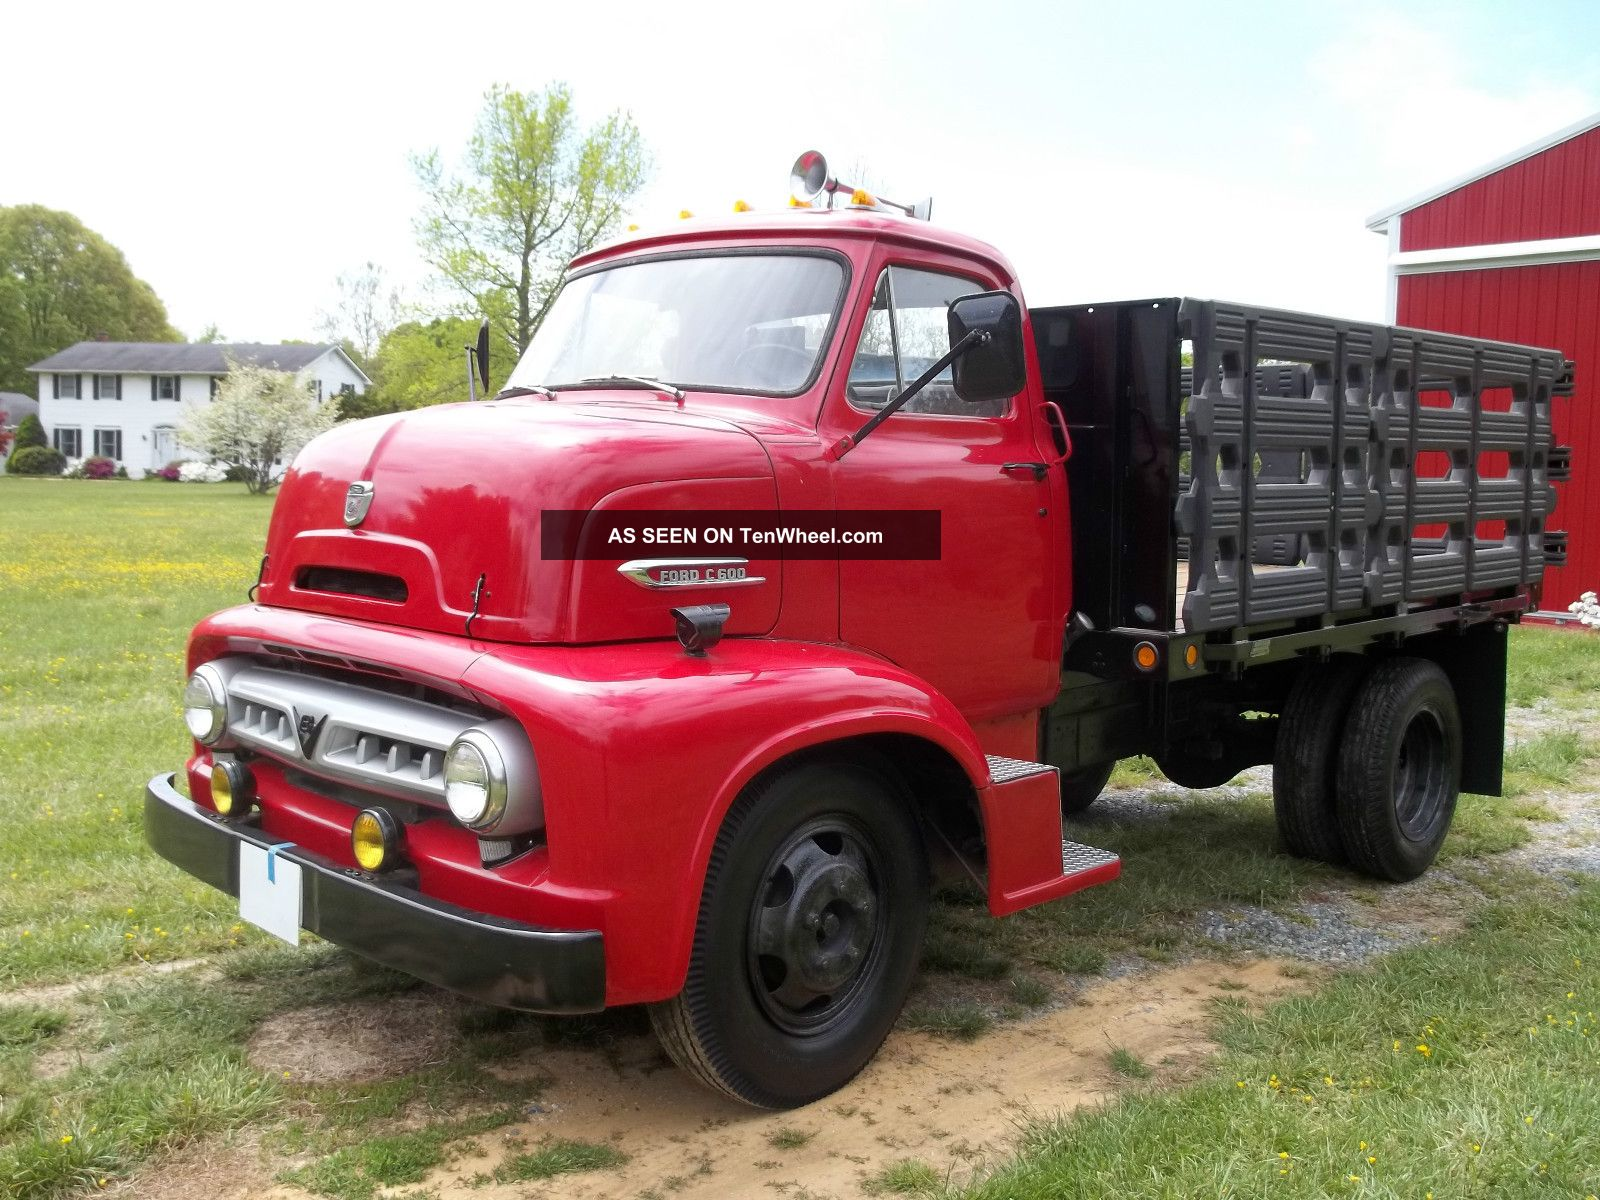 1953 ford pickup specifications brother-dcp-7010 service repair manual Auto Repair Service Manuals